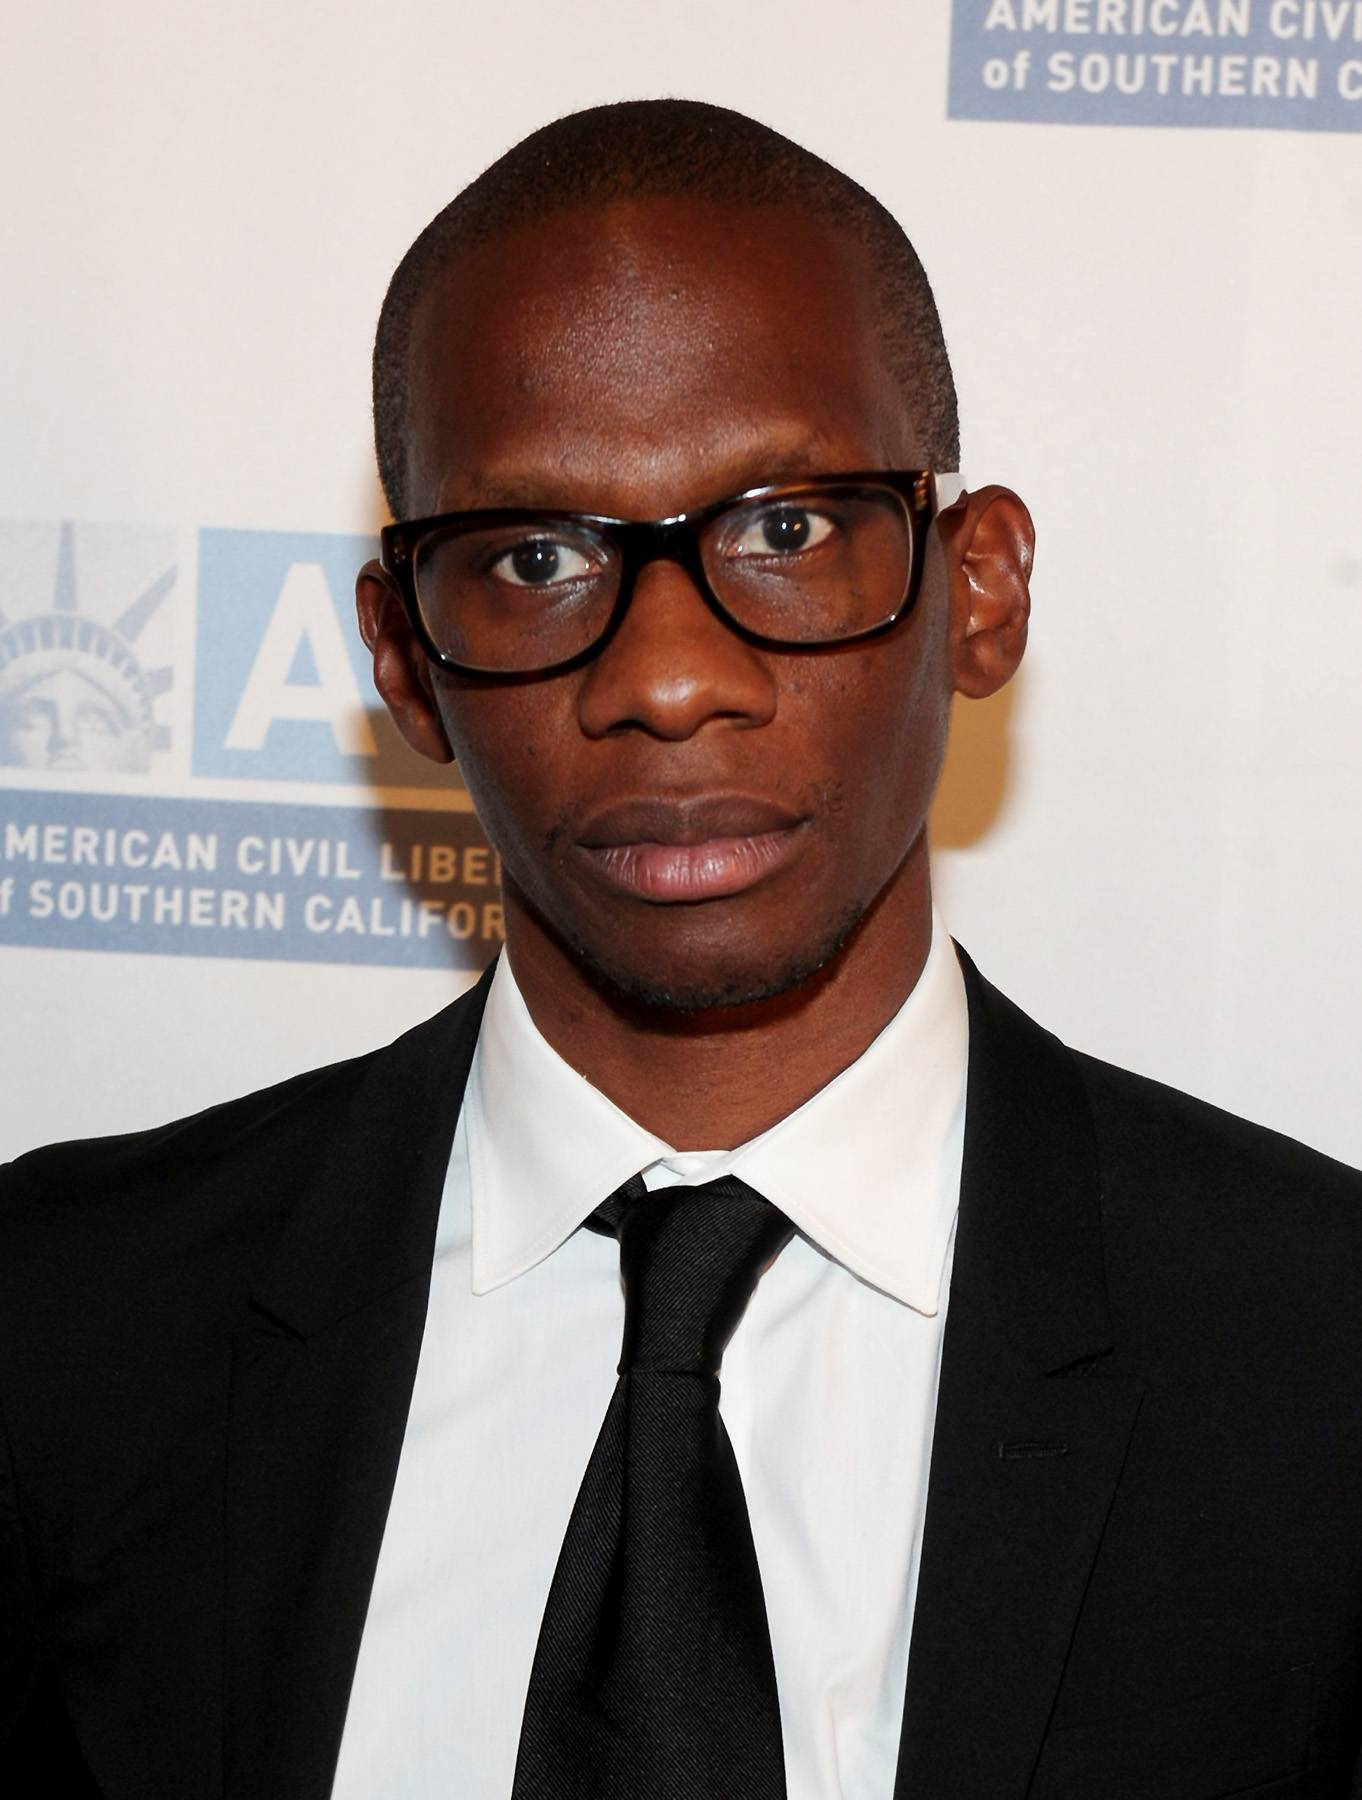 """Troy Carter - After a brief stint as her handler, music manager Troy Carter (John Legend, Mindless Behavior, Lady Gaga) felt the wrath of Azealia Banks. She parted ways with him and accused him of planting false stories about her in the press. After the breakup, Banks sent out a barrage of tweets that included, """"I will definitely be working BY MYSELF and saving MY 20% On management commissions while I avoid you sharks in the water?.I really want a female manager. Women are just so much smarter.?(Photo: Alberto E. Rodriguez/Getty Images)"""